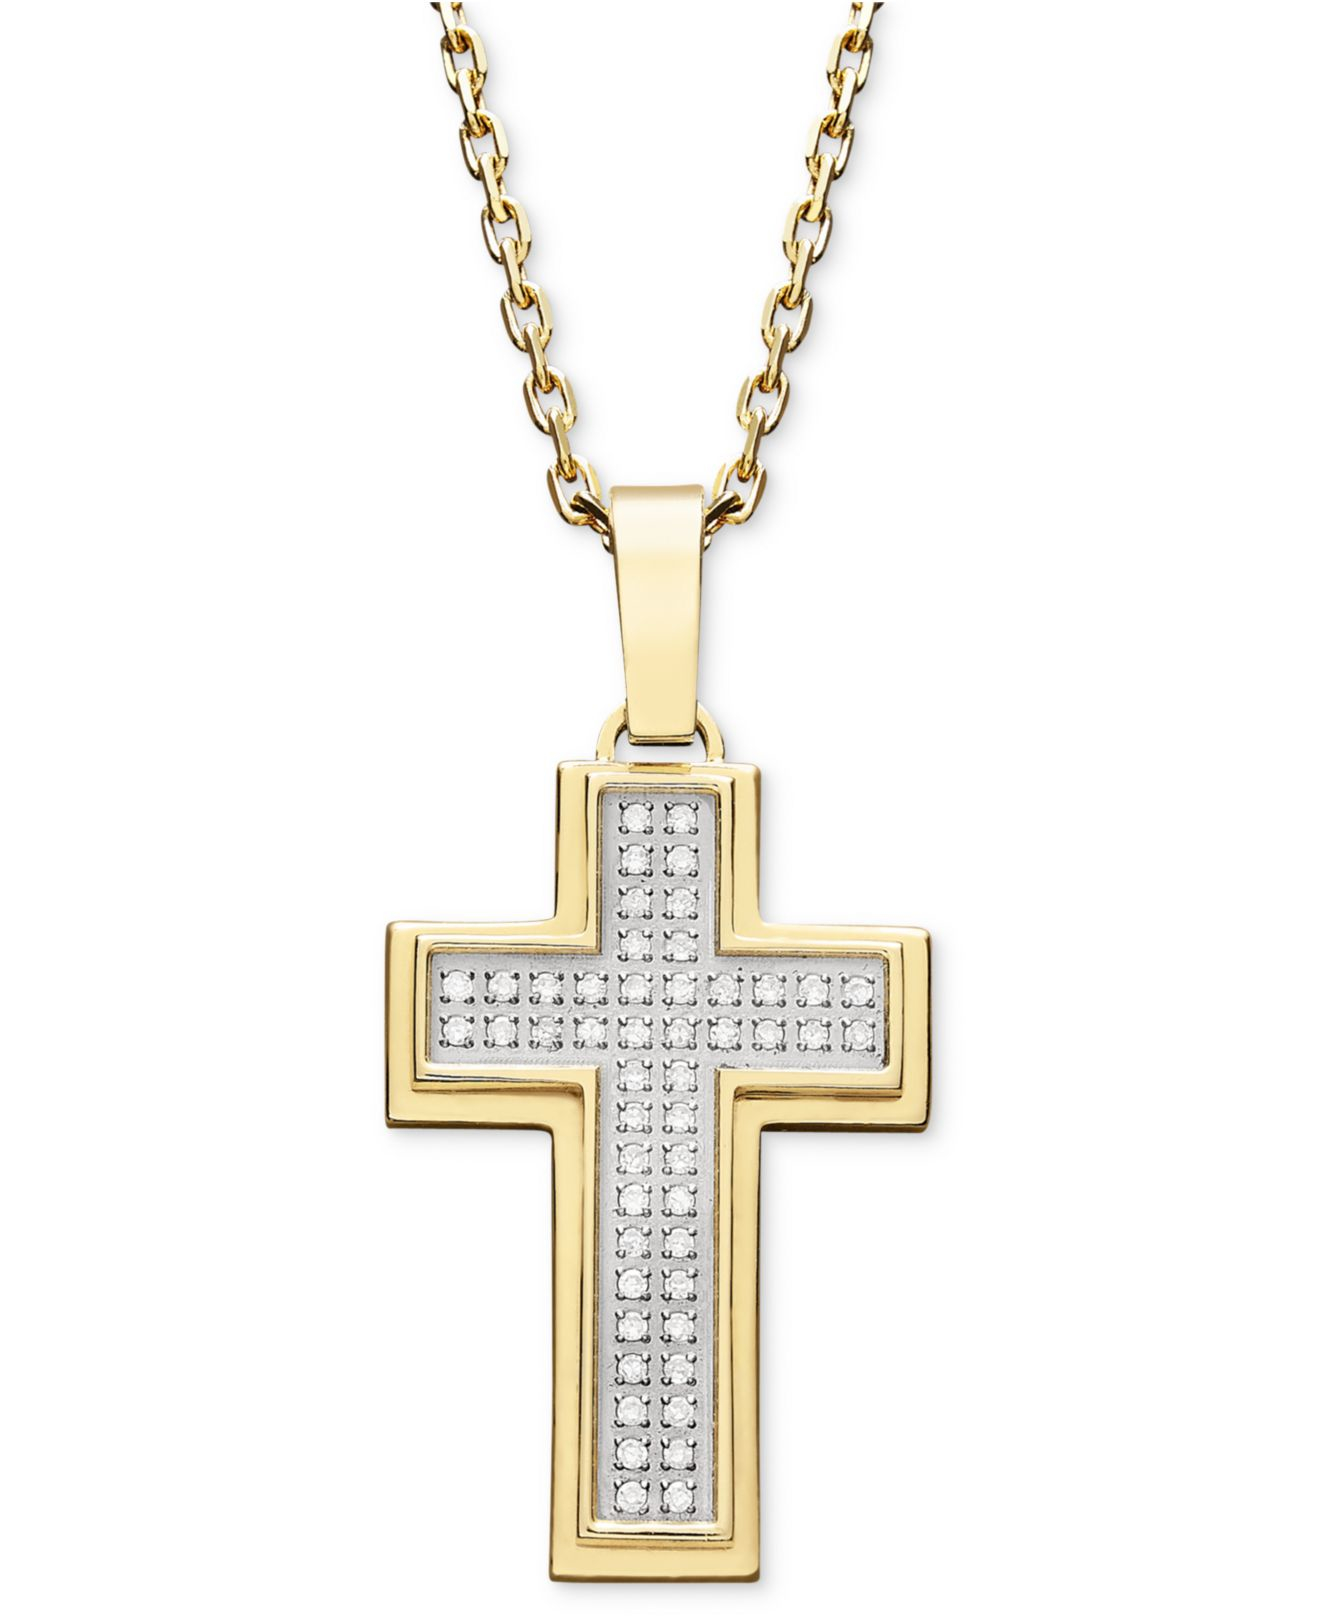 Macy s Men s Diamond Cross Pendant Necklace In Gold Ion plated